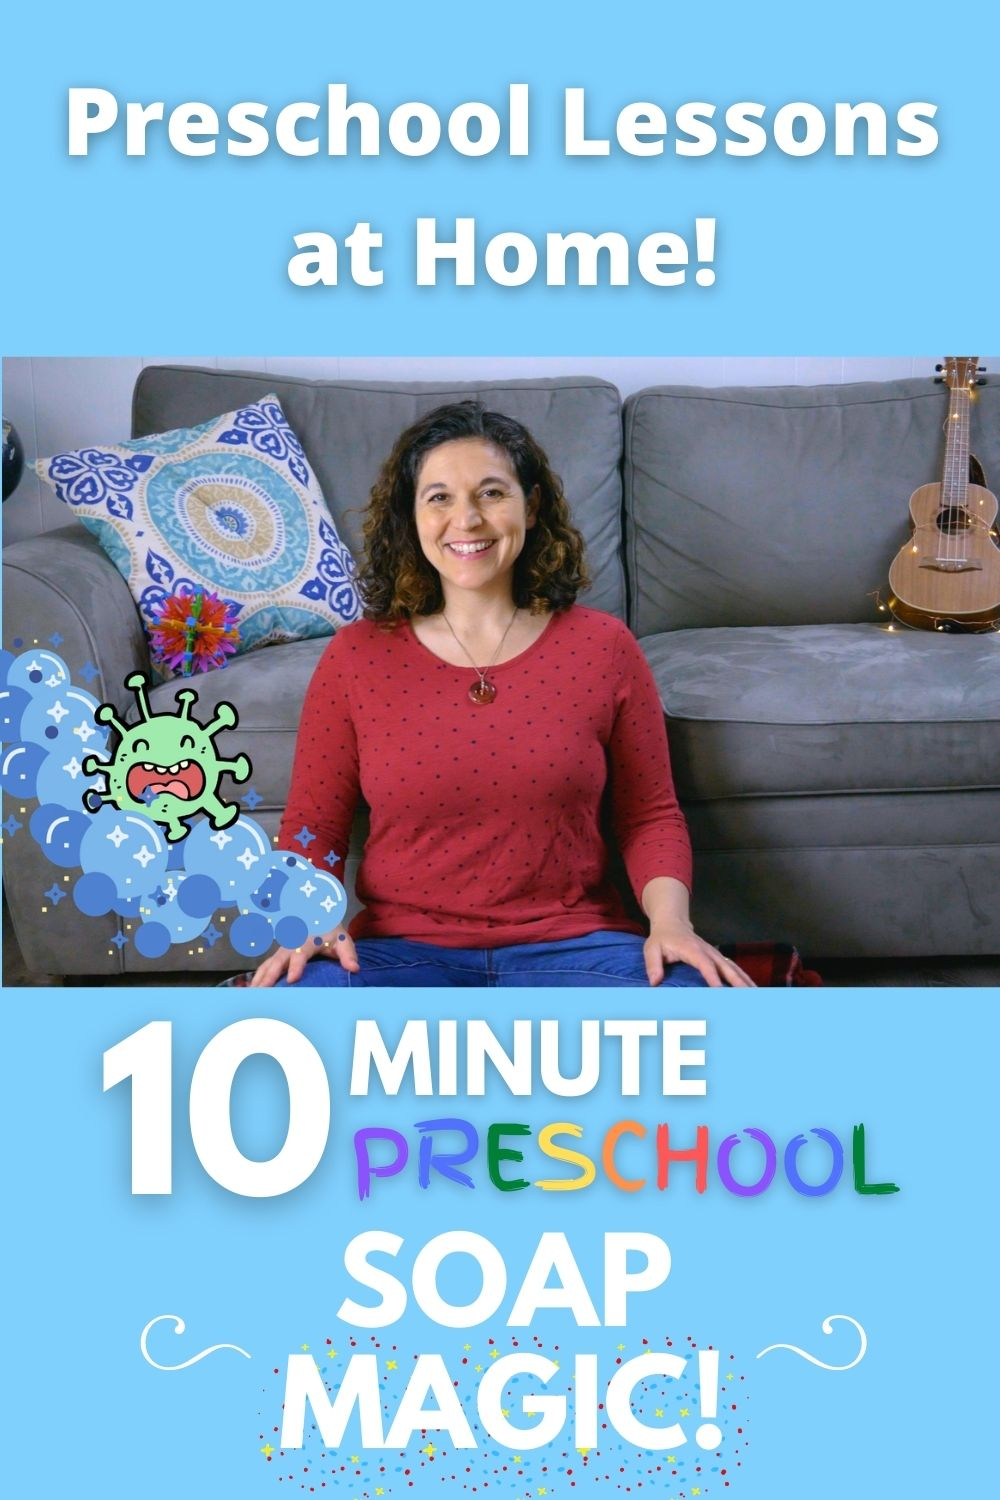 Bring preschool home to your child as Mrs. S teaches kids how to wash hands and leads them in a colorful soap activity, PLUS how to make your own play-dough soap!  #preschool #preschoolactivities #toddler #toddlerscience #preschoolactivities #learnathome #earlyeducation #preschoolers #washhands #howtowashhands #learntowashhands #soap #preschoolart #preschoolsongs